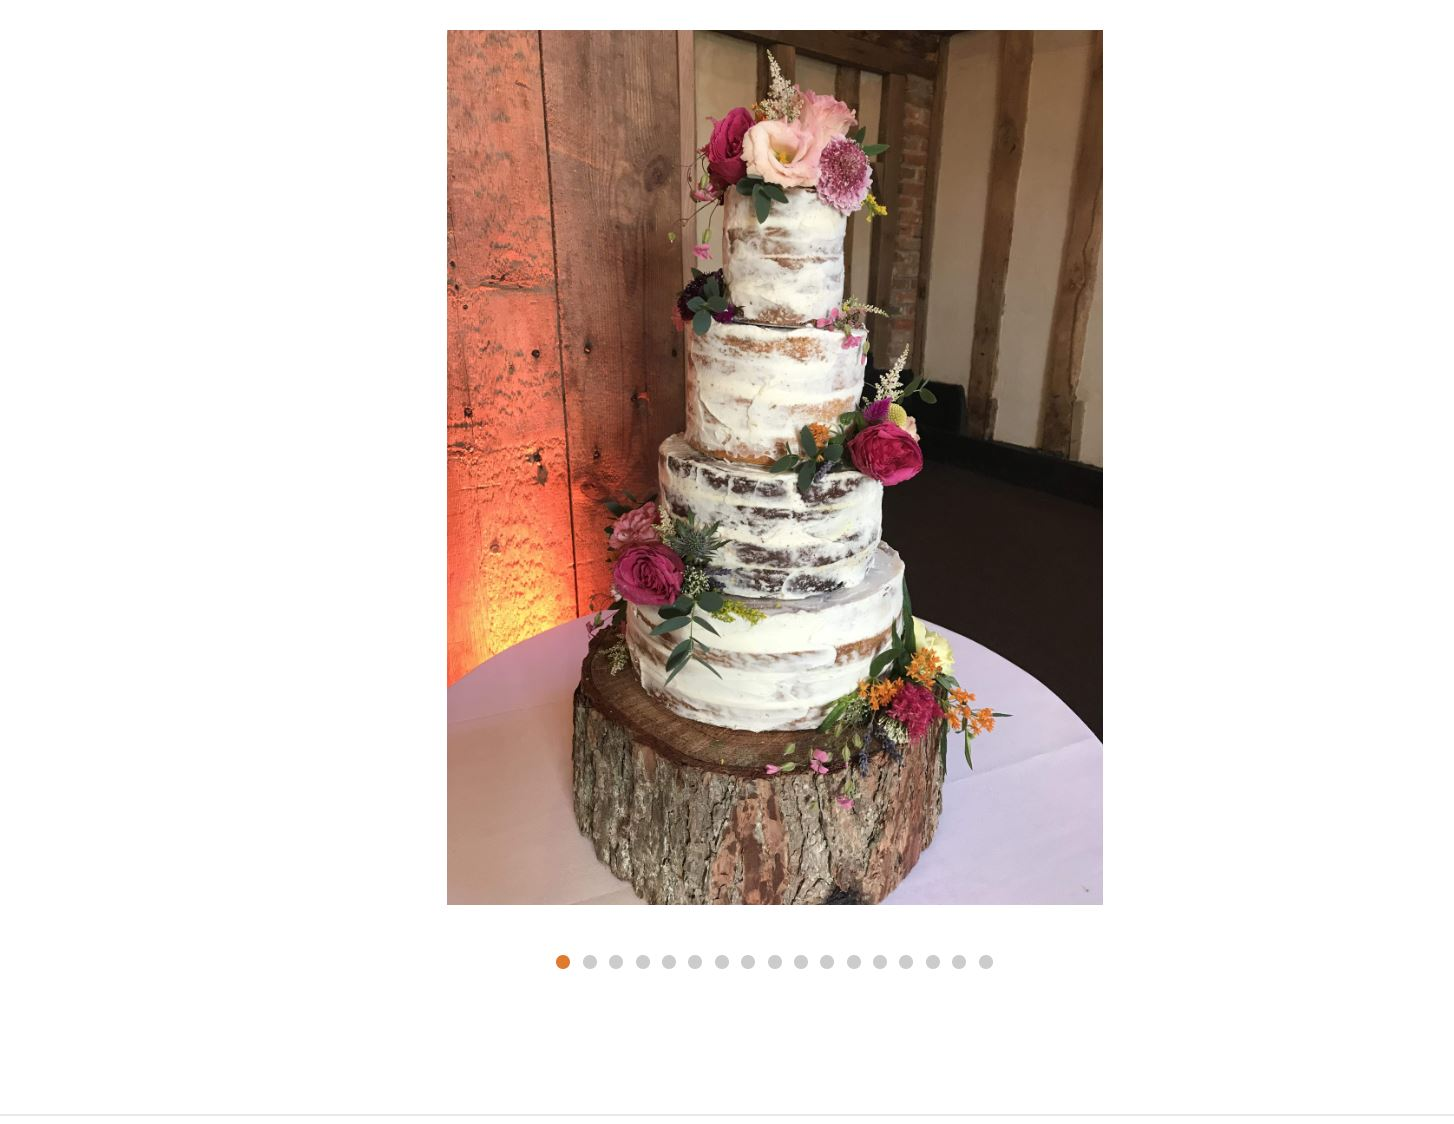 Cake Cuisine - Masters in creating stunning wedding cakes. Established 1994. Creating your vision into reality.